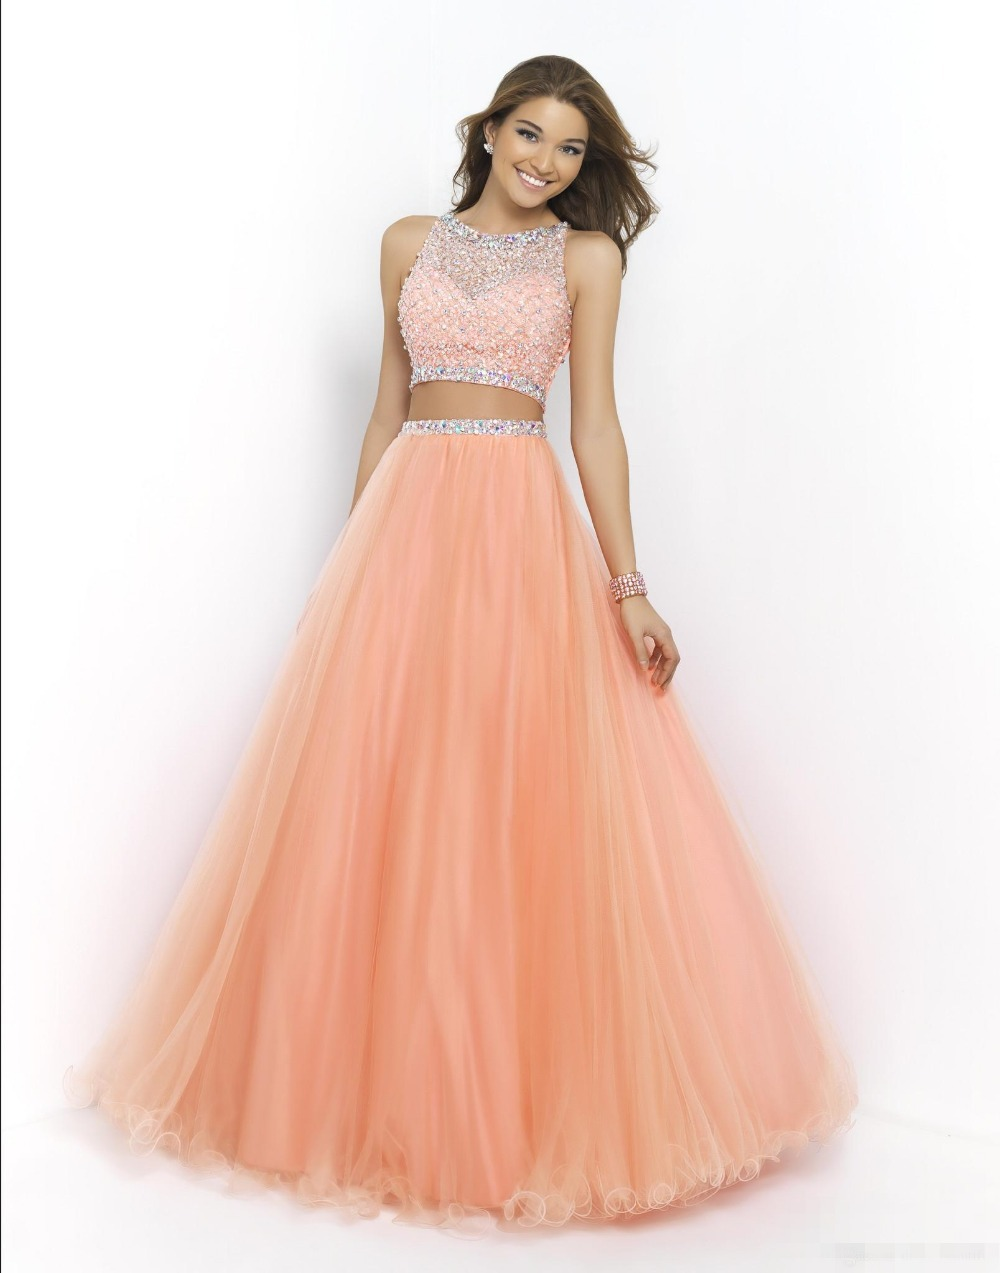 Pink Champagne Color Dress